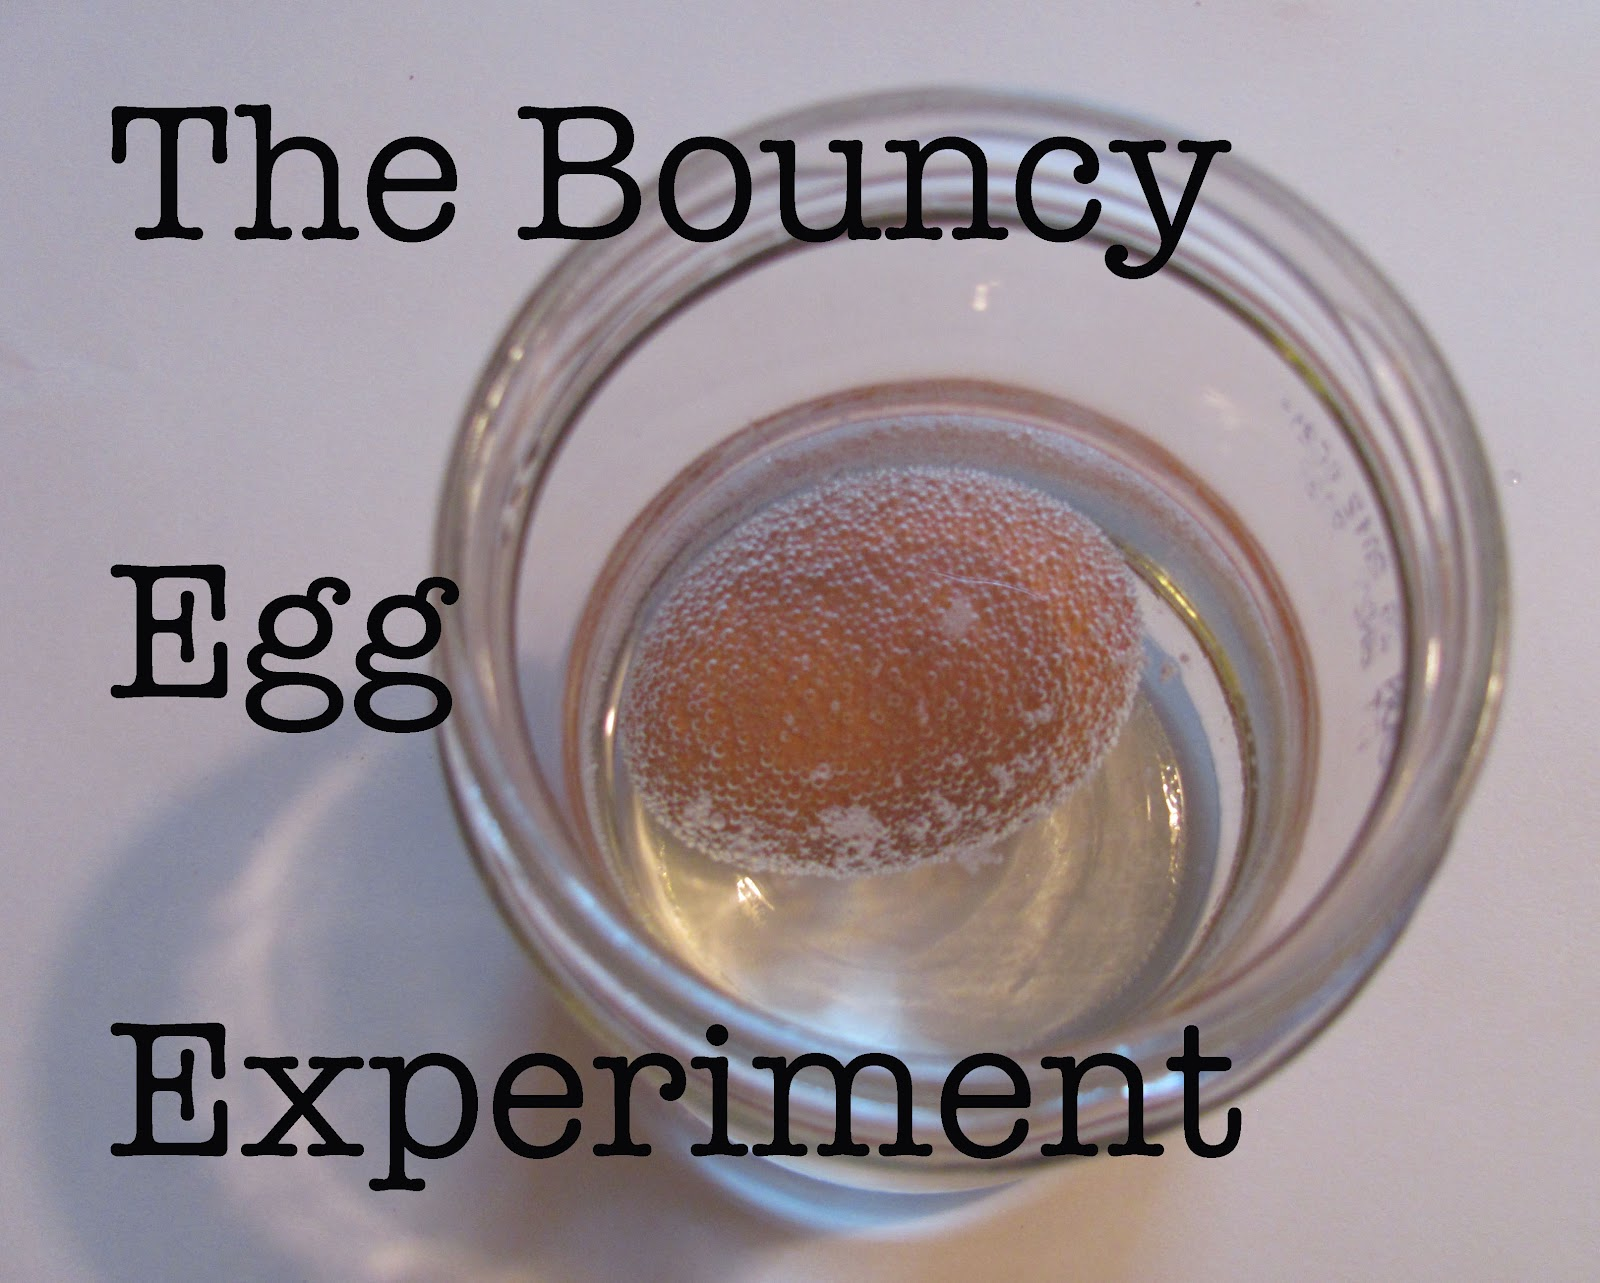 bouncey egg experiment Tall, tender, light, fluffy, super soft, squishy yet bouncy, stringy and flavorful  cup  combine together the milk, egg, melted butter and the cooled tangzhong  i  would honestly encourage you to experiment with this idea.